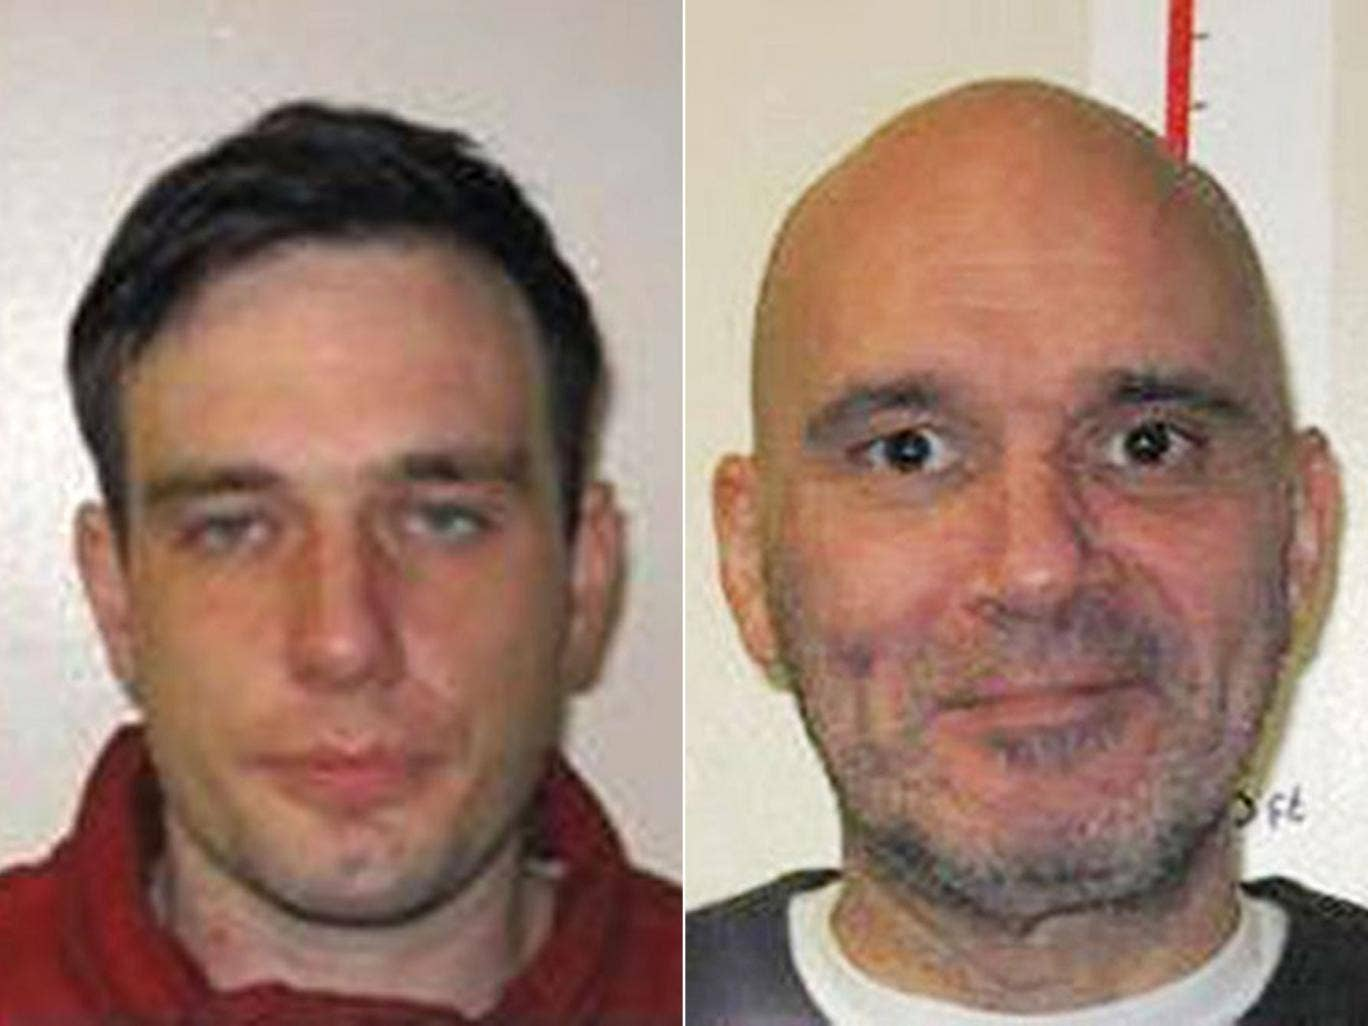 Lewis Powter, left, failed to return to HMP Hollesley Bay on Sunday night. Paul Oddysses had absconded from the same prison the day before